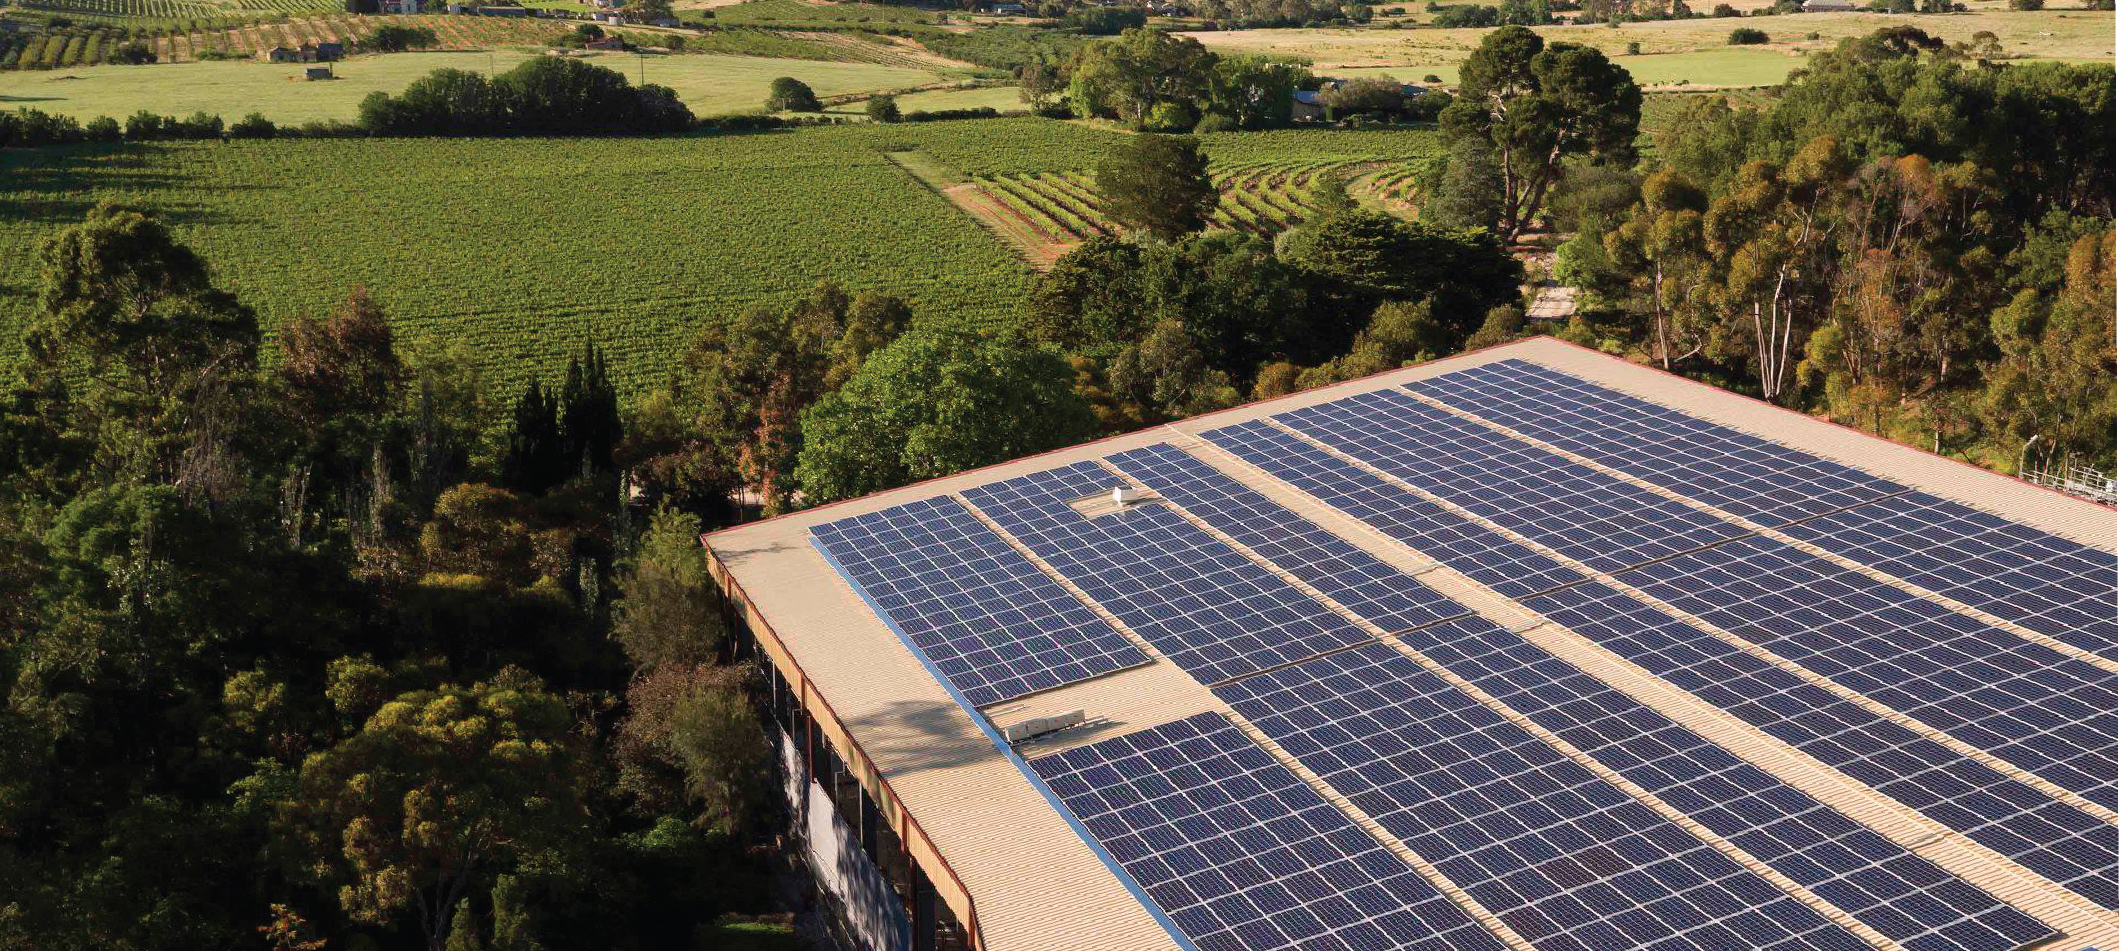 An image of a winery whose roof is fitted edge-to-edge with solar panels and surrounded by verdant vineyards.